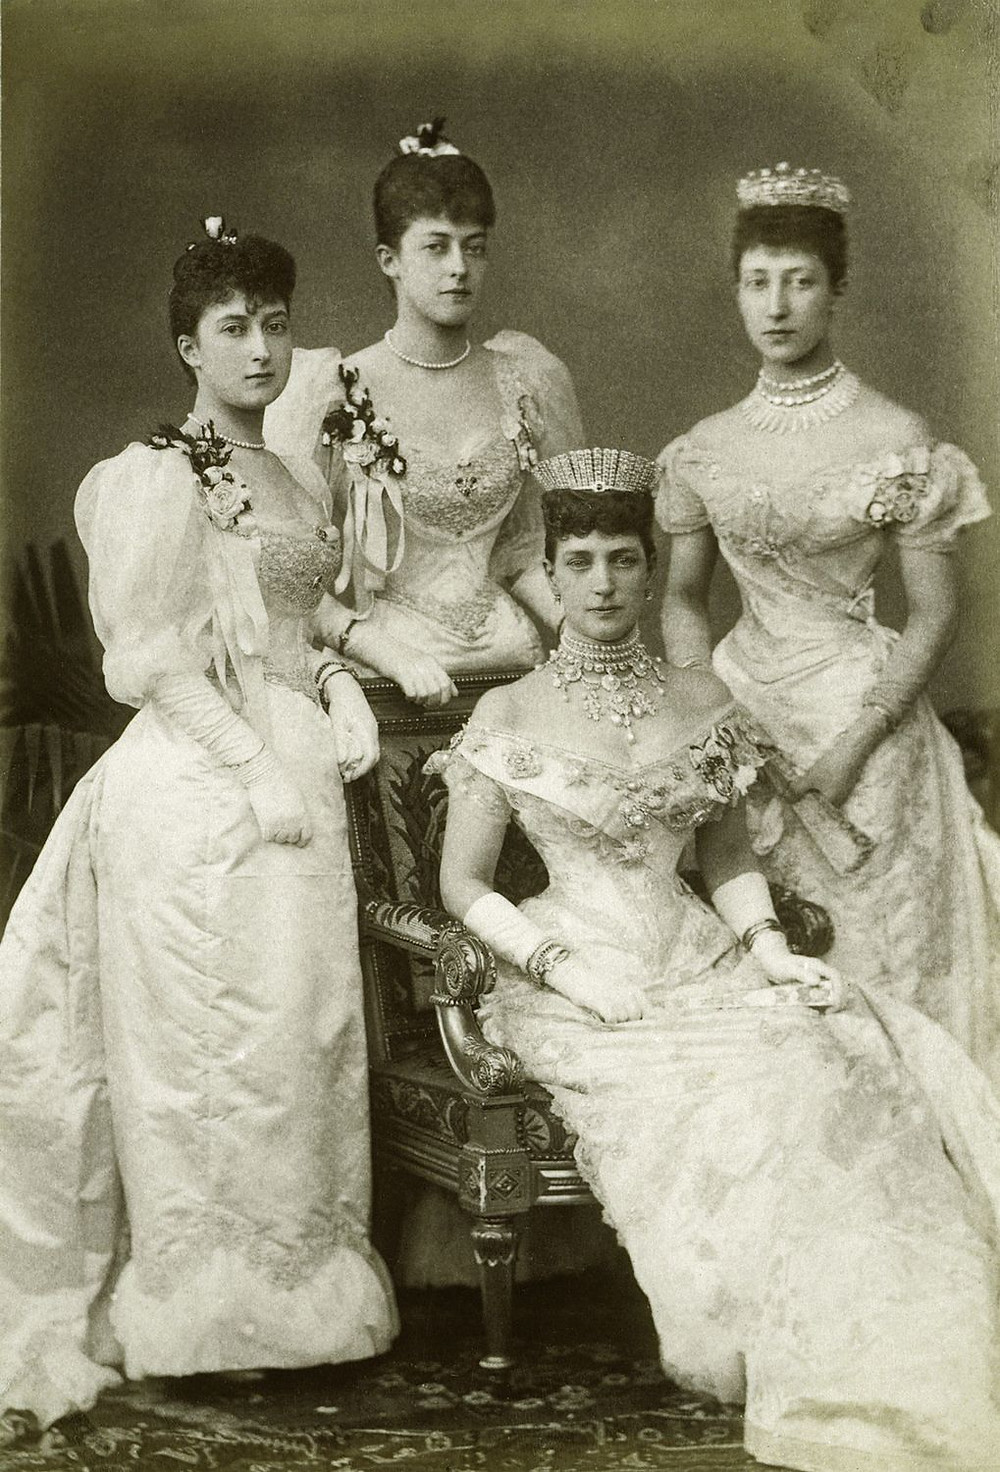 RCIN 2905165; Alexandra, Princess of Wales, with her daughters, July 1893 Royal Collection Trust/© Her Majesty Queen Elizabeth II 2018